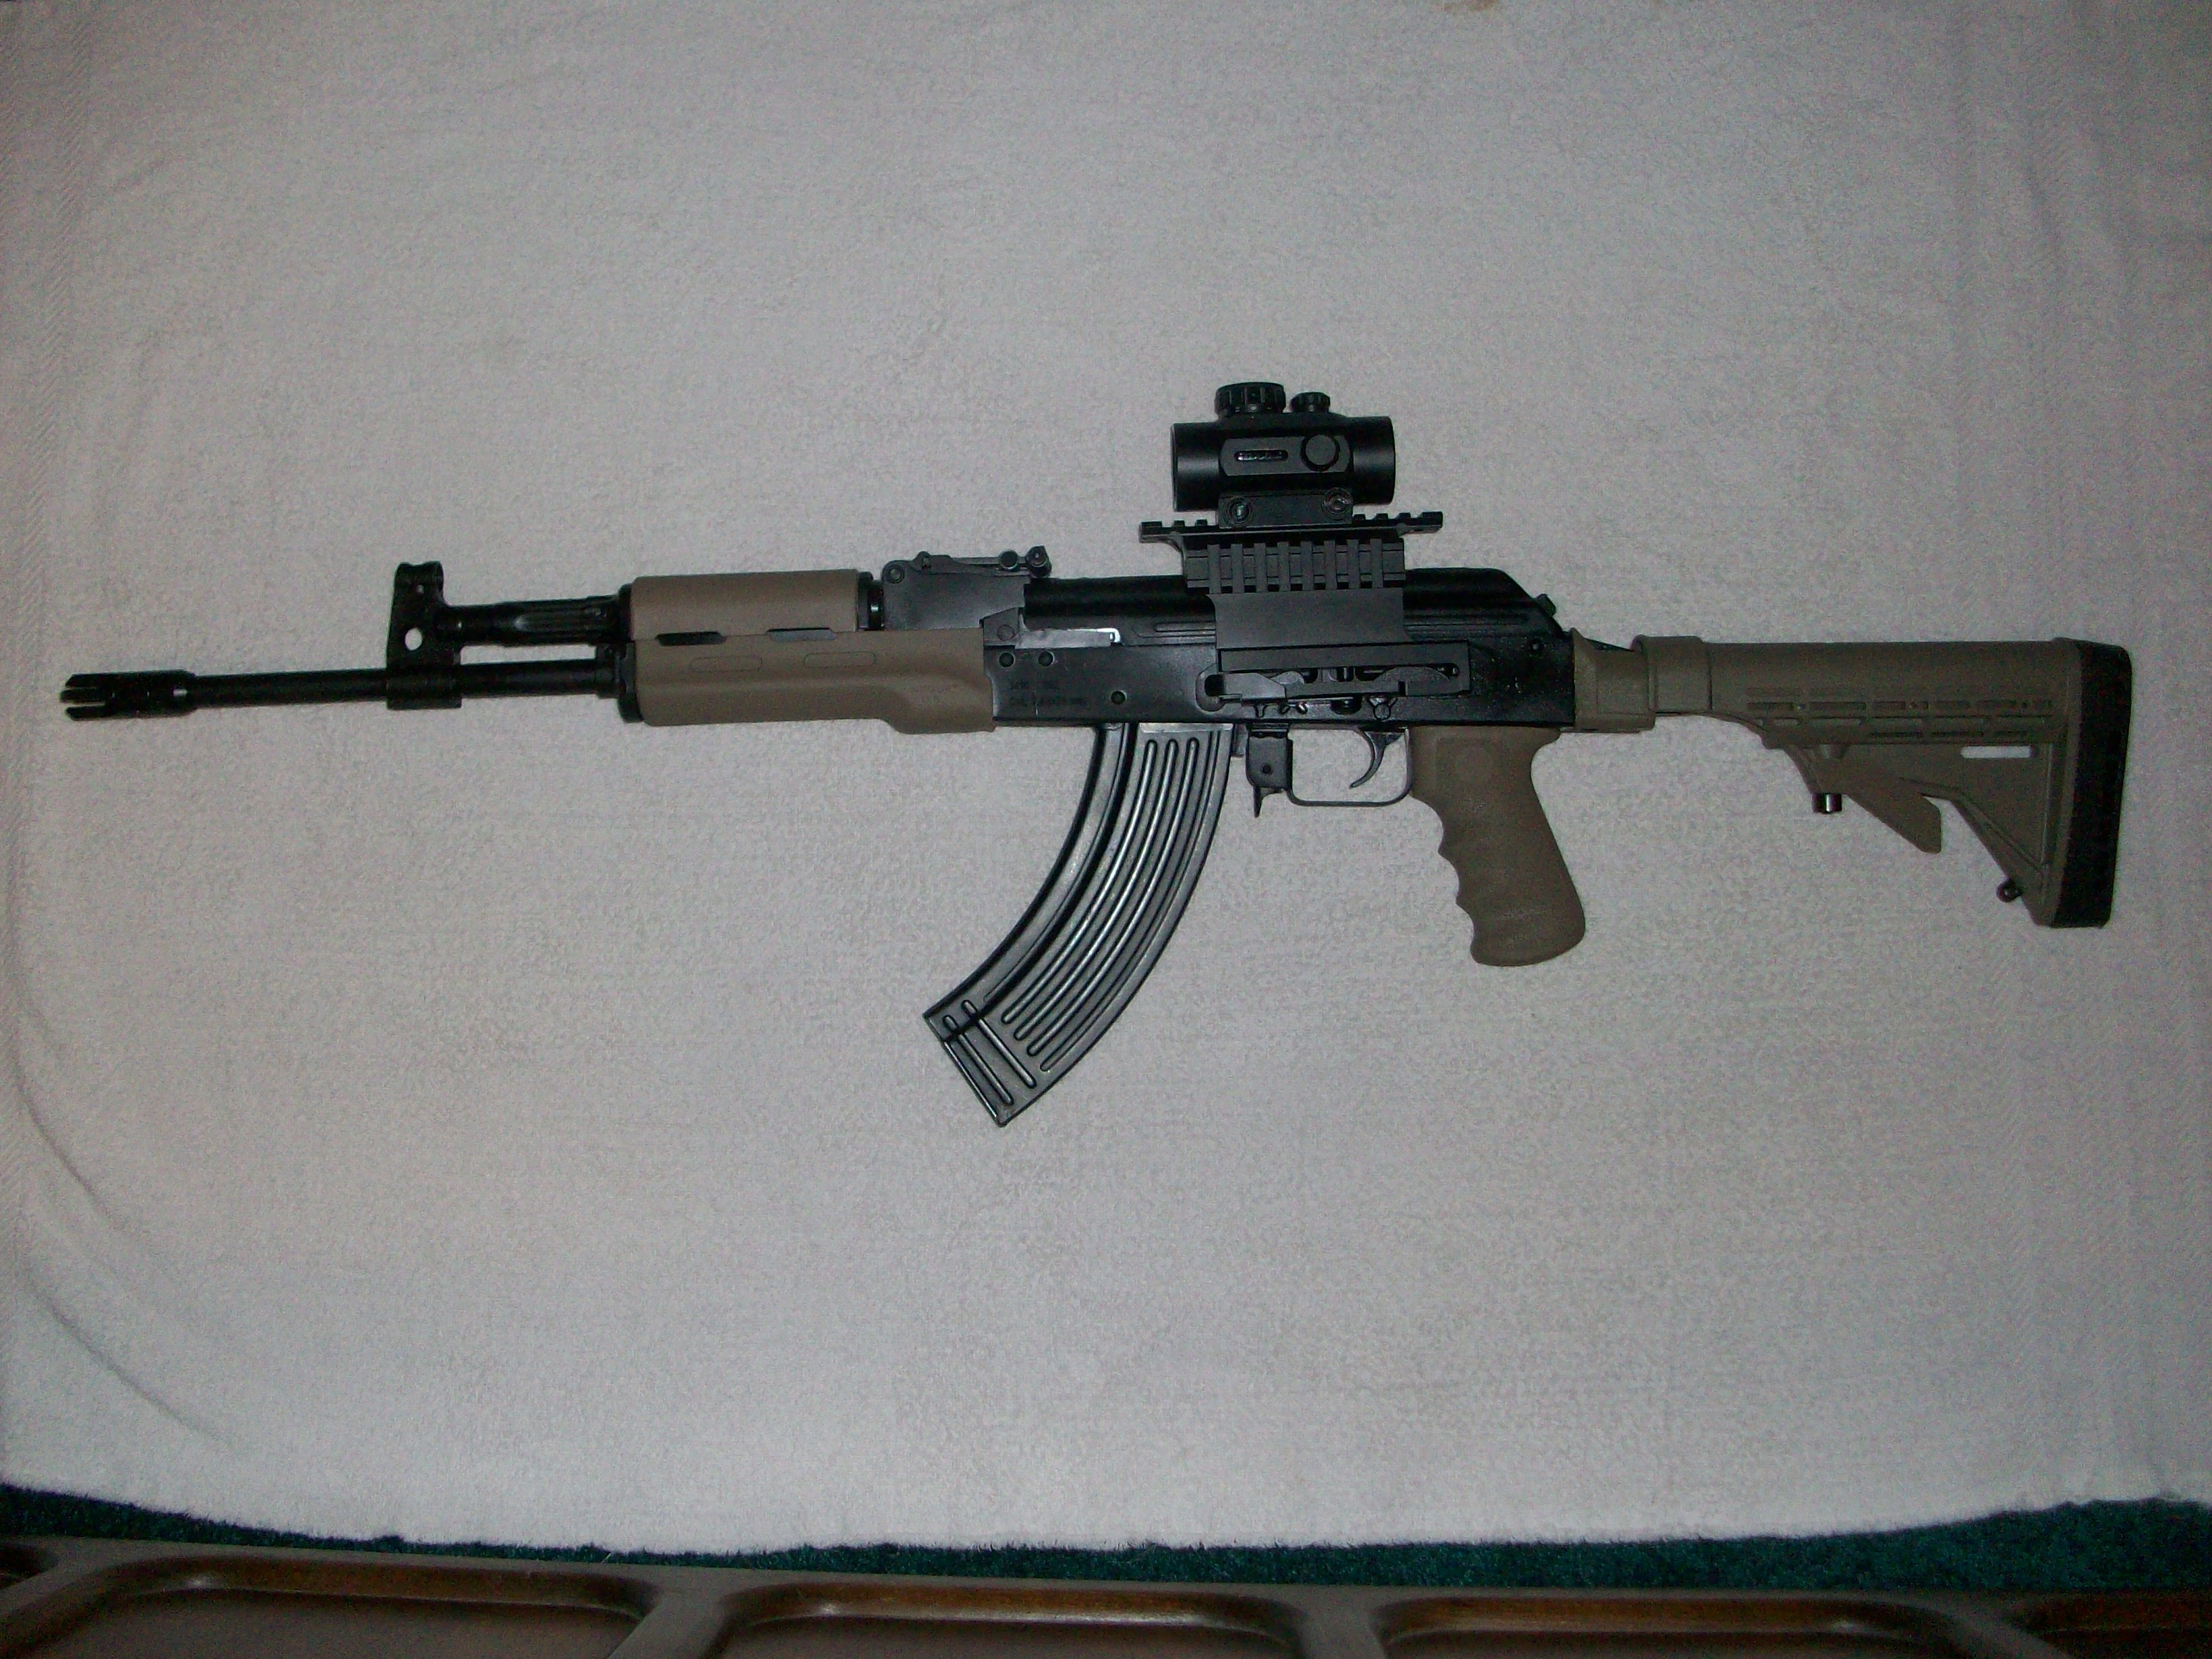 What zero range to you use for your AK